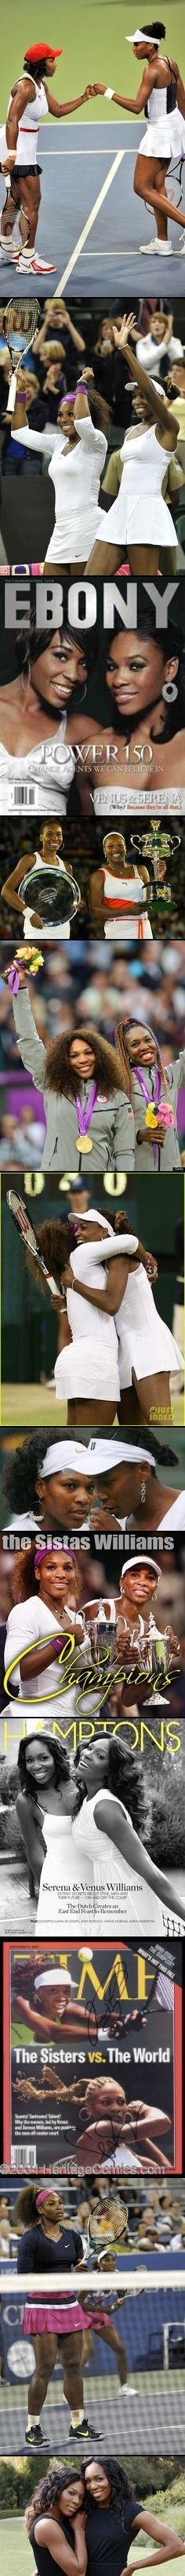 Venus Williams, a 7-time Grand Slam title winner (singles), & Serena Williams, 16-time Grand Slam title winner (singles), they have met in 8 Grand Slam singles finals. They have won 22 doubles championships together! Both sisters have had the honor of being ranked by the Women's Tennis Assoc at the World No. 1 position. In 2002 Venus Williams & Serena were ranked No. 1 & No. 2 respectively. #serena, #venus, #doubles, #tennis, #champion